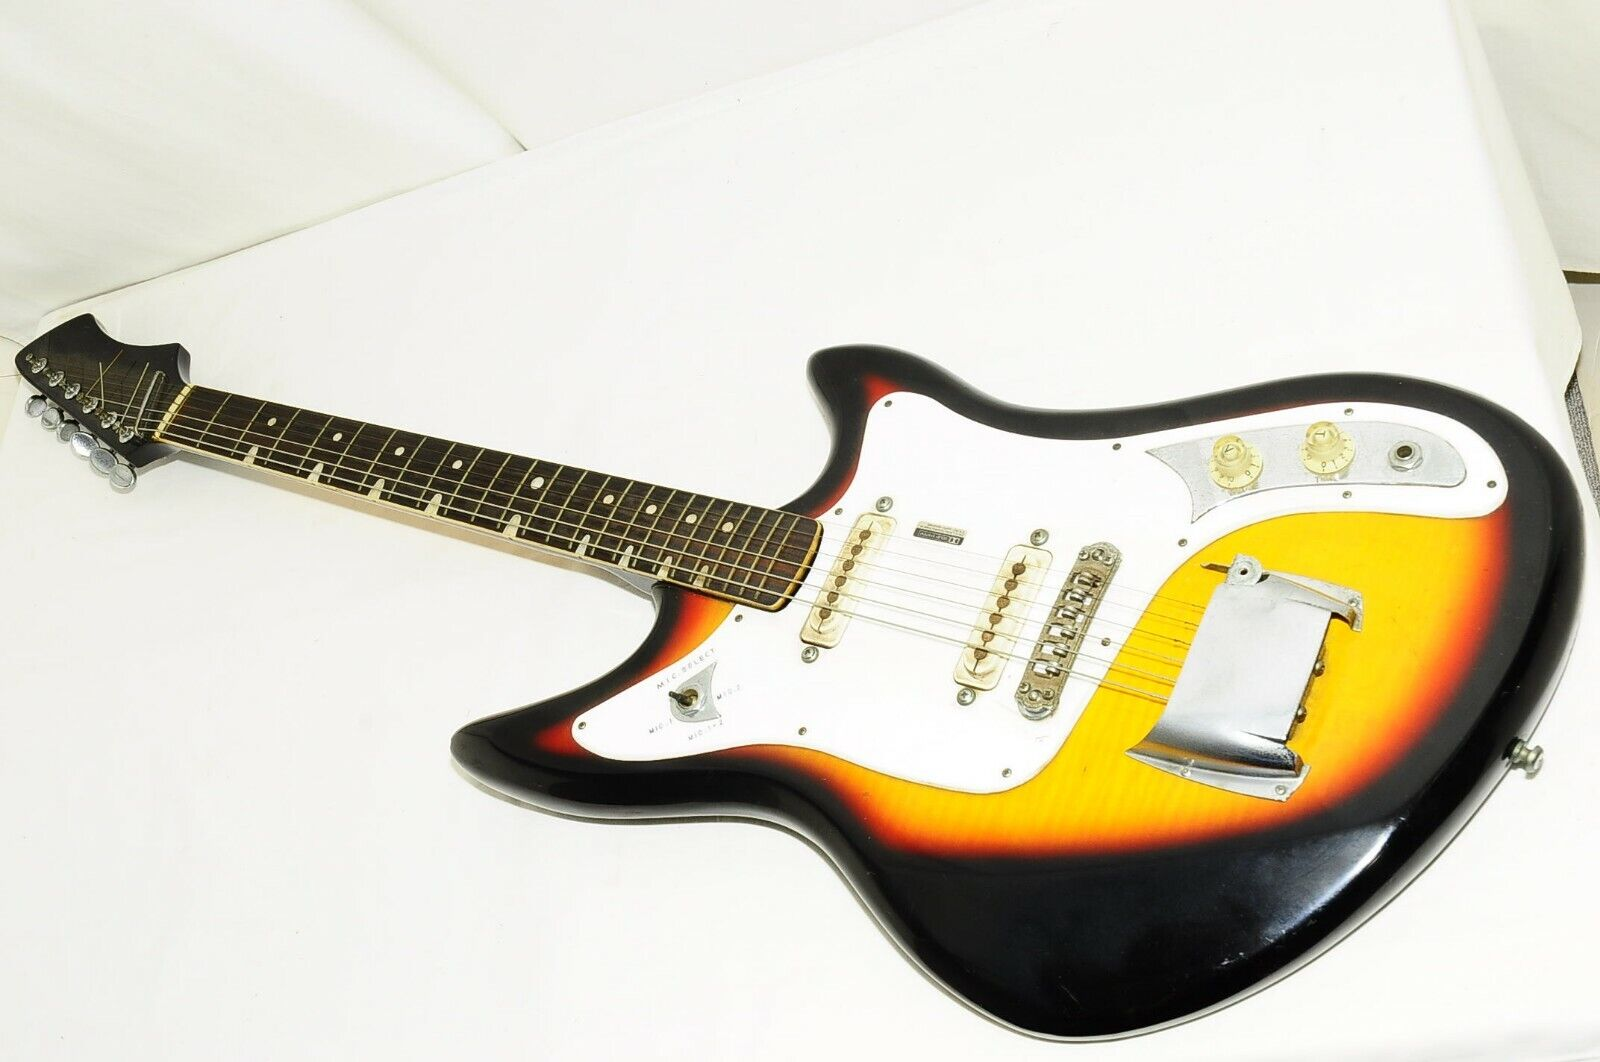 Excellent Guyatone LG-170T Electric Guitar Ref No 2564